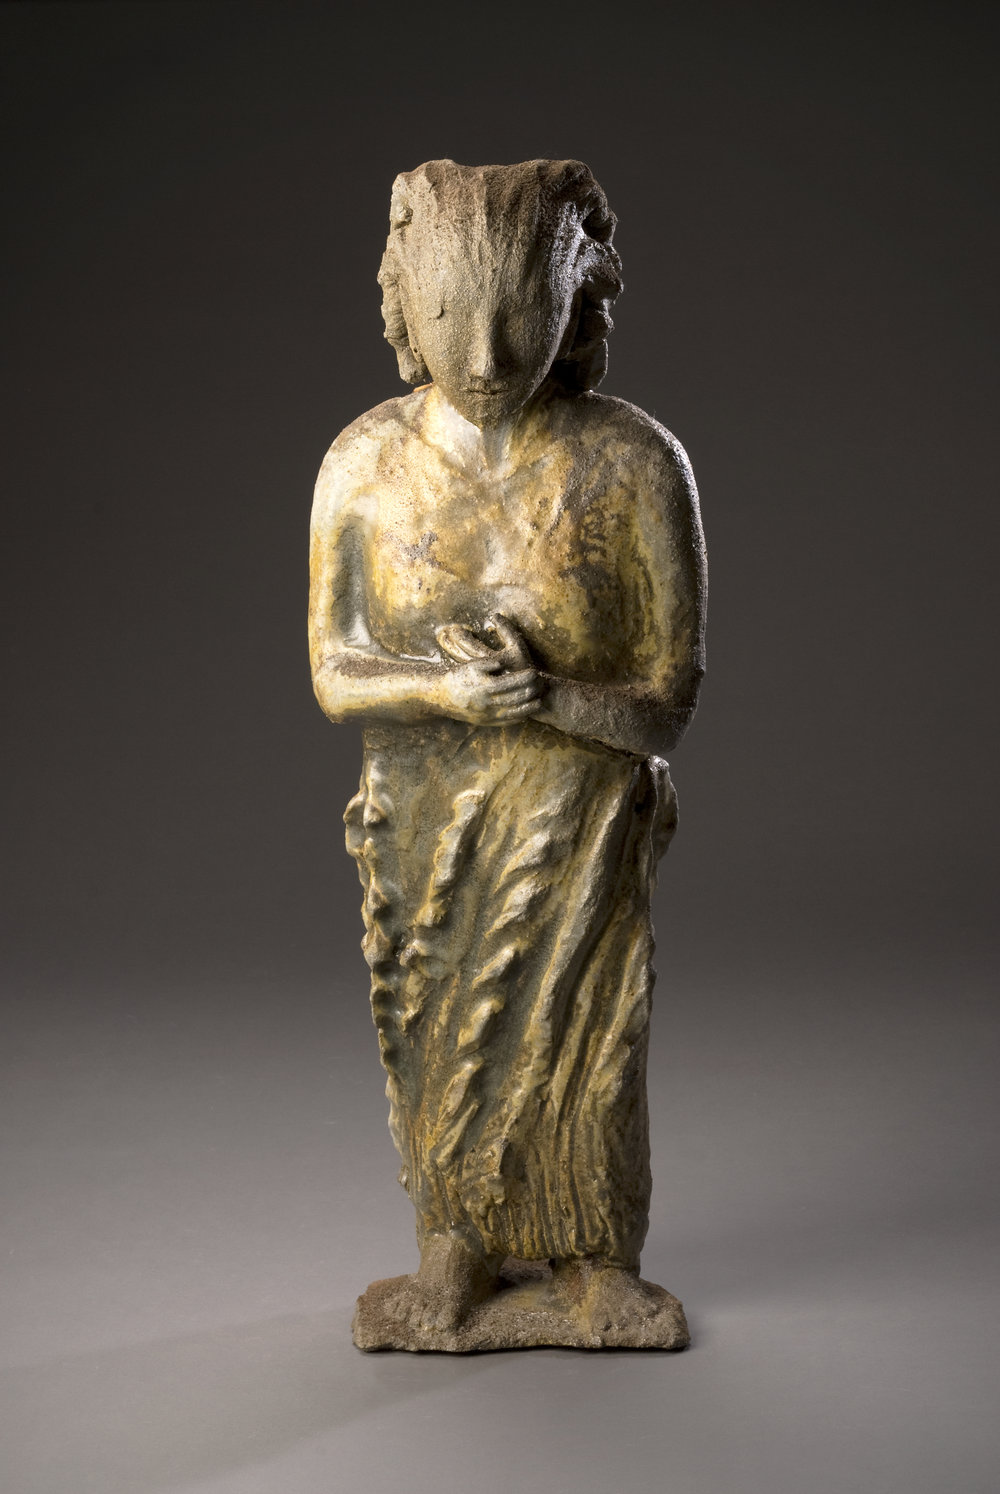 shrine figure - 3_4 view - wood-fired goldceladon -l  27%22x9%22x8%22@300.jpg